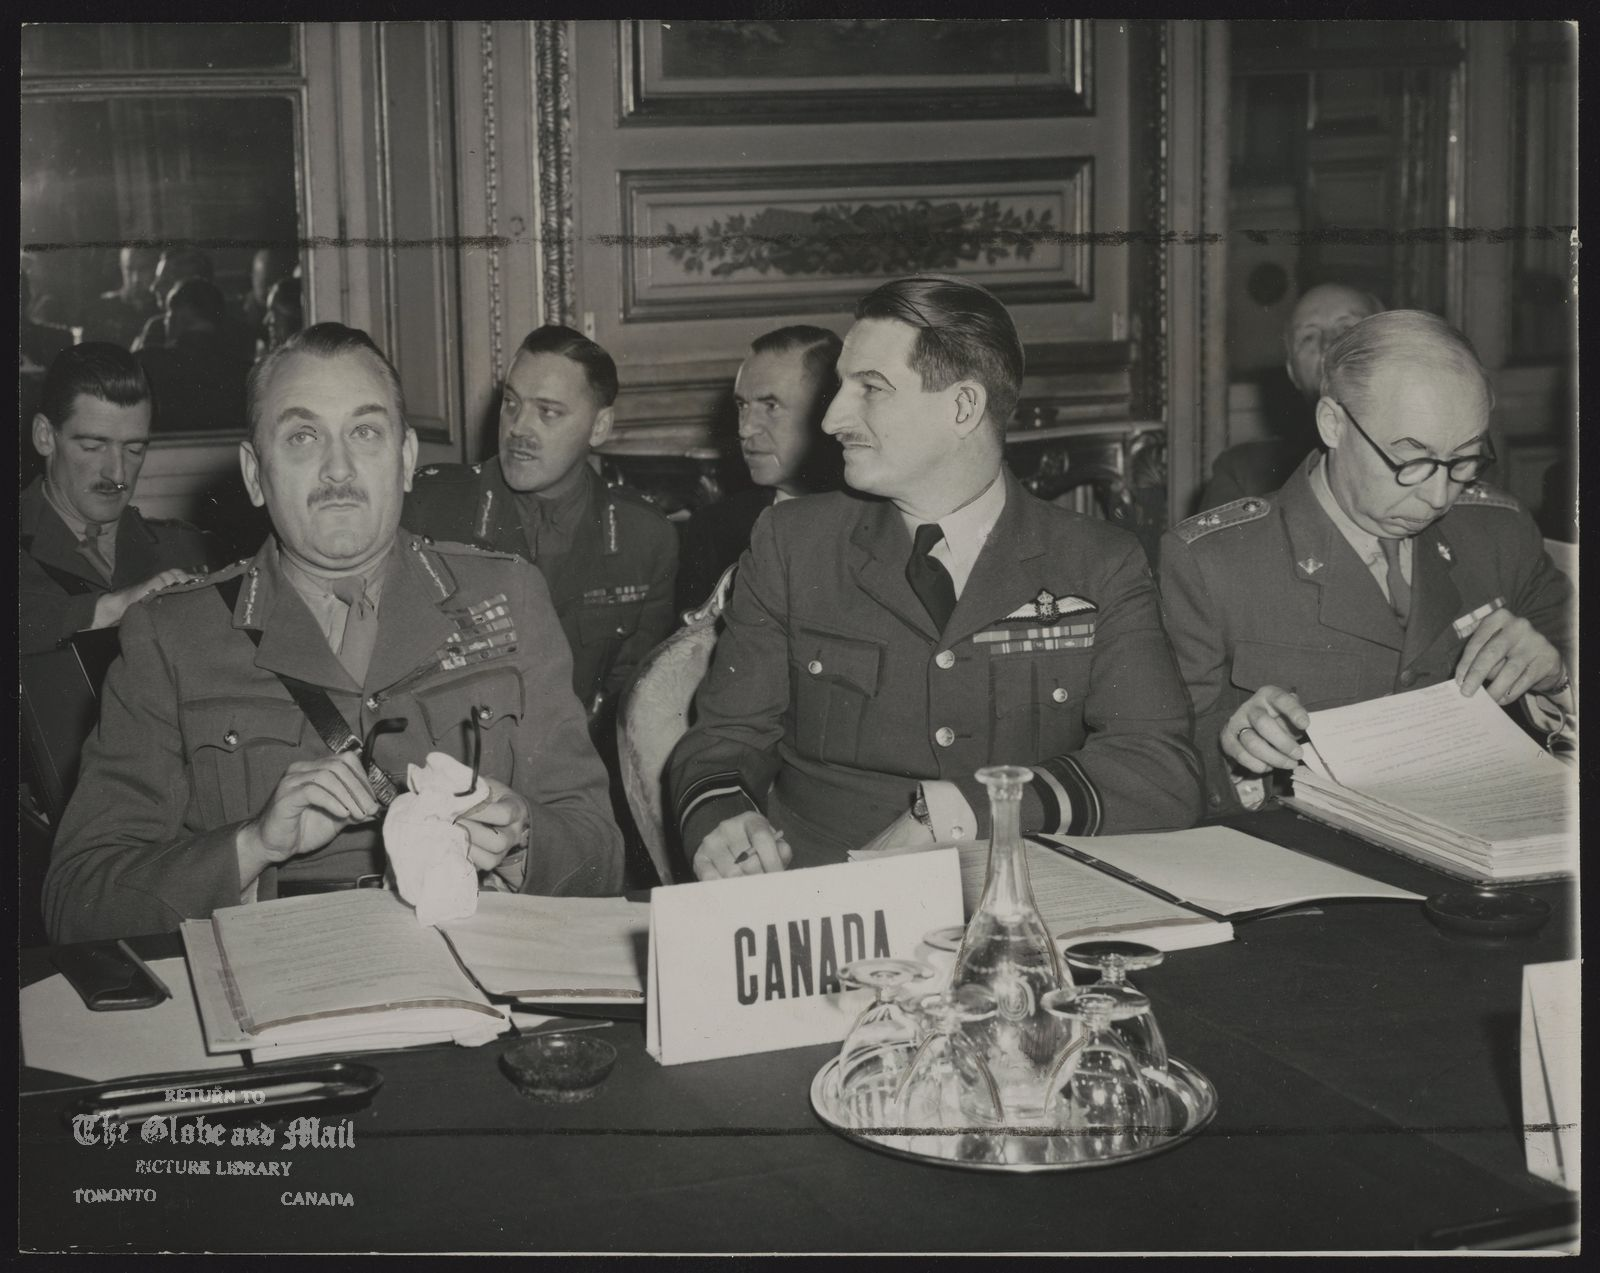 NORTH ATLANTIC TREATY ORGANIZATION (NATO) CANADA AT ATLANTIC PACT TALKS ---Canadian delegates to the Atlantic Pact military conference in Paris are seen at table and behind others in the French Navy Department building. From left: Chief of Staff Lt.-Gen. Charles Foulkes, Canadian Army Chief of Staff: Air Vice-Marshal Hugh Campbell, Canadian representative to the standing Atlantic Pact defense group, and (at back, left) Brig. J. D. B. Smith. At extreme right is Lt.-Gen. E. Goertz, Danish Army commander-in-chief.